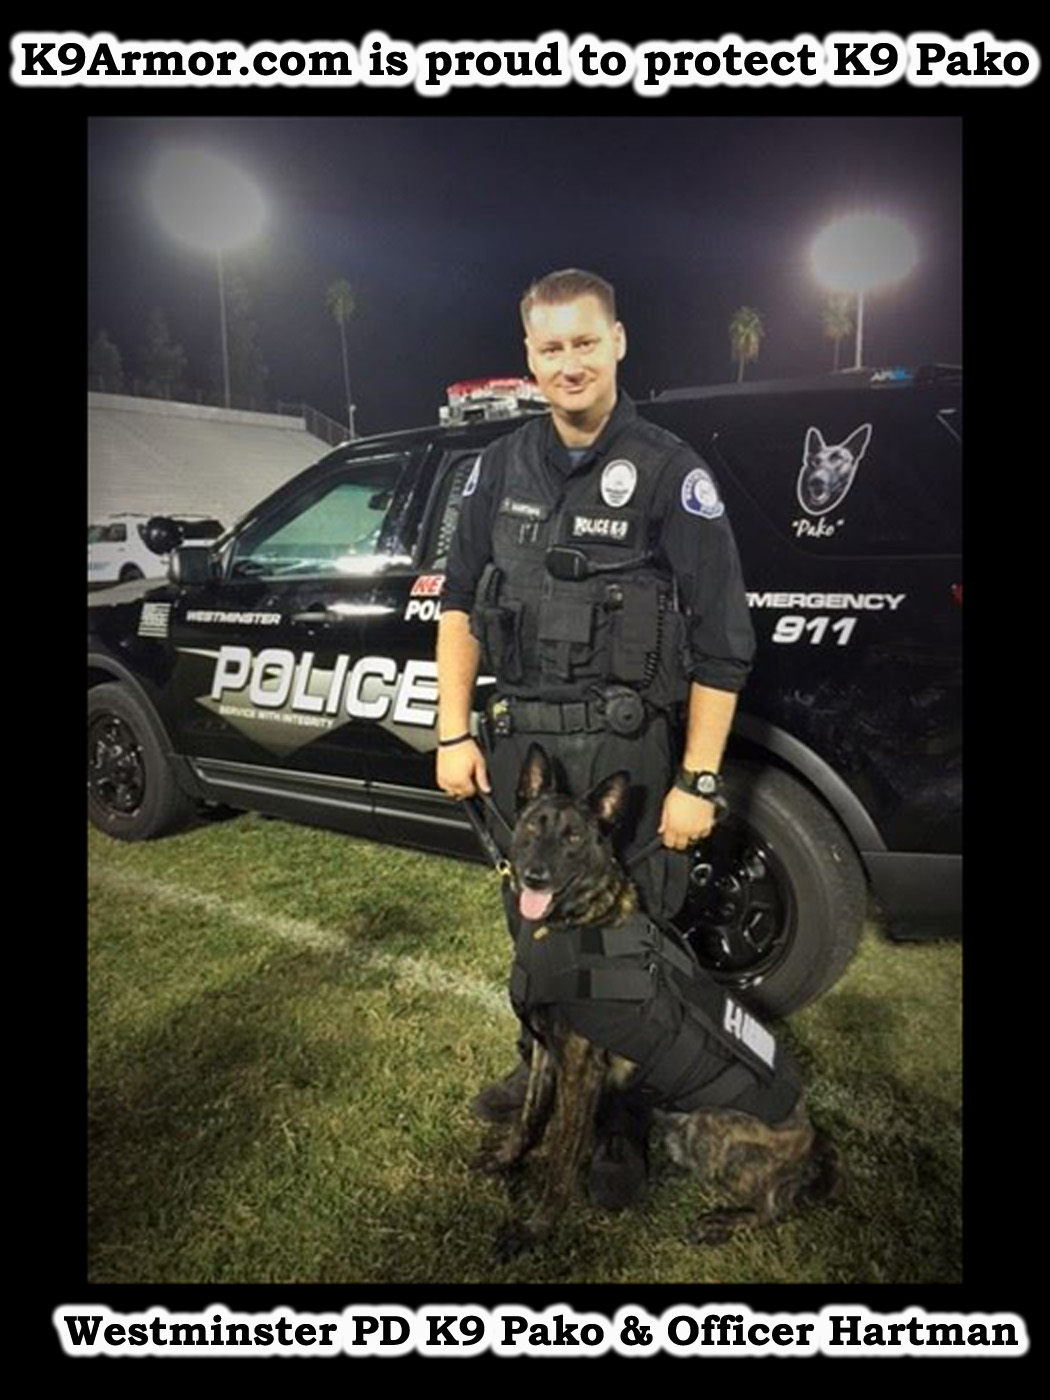 Westminster PD K9 Pako and Officer Hartman photo by Frank DAmato OC Register